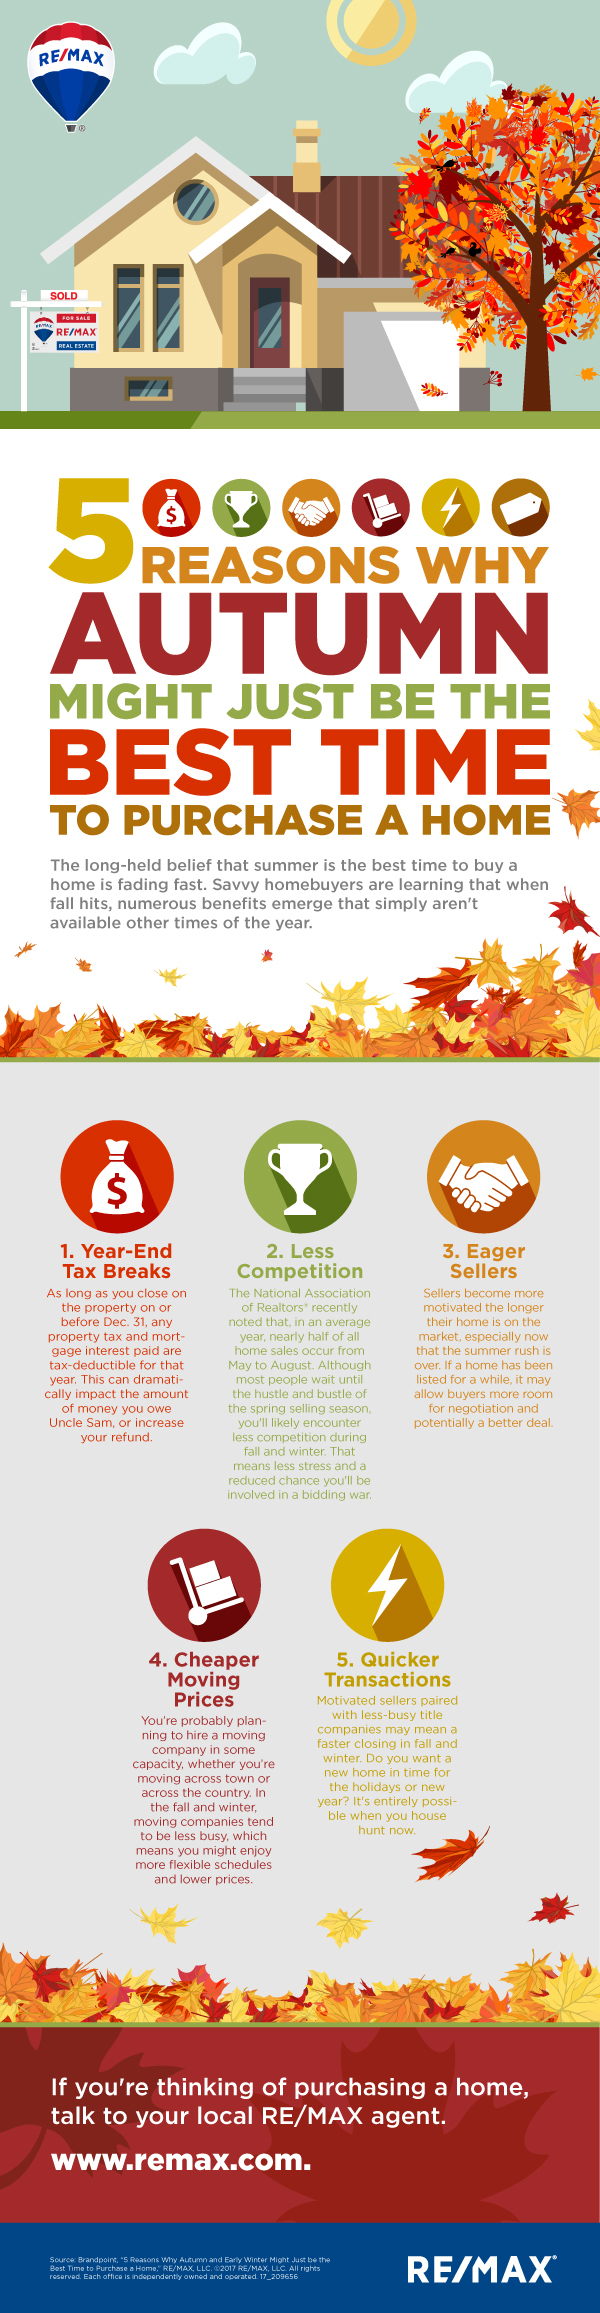 5  Reasons why Autumn is the best time to purchase a home